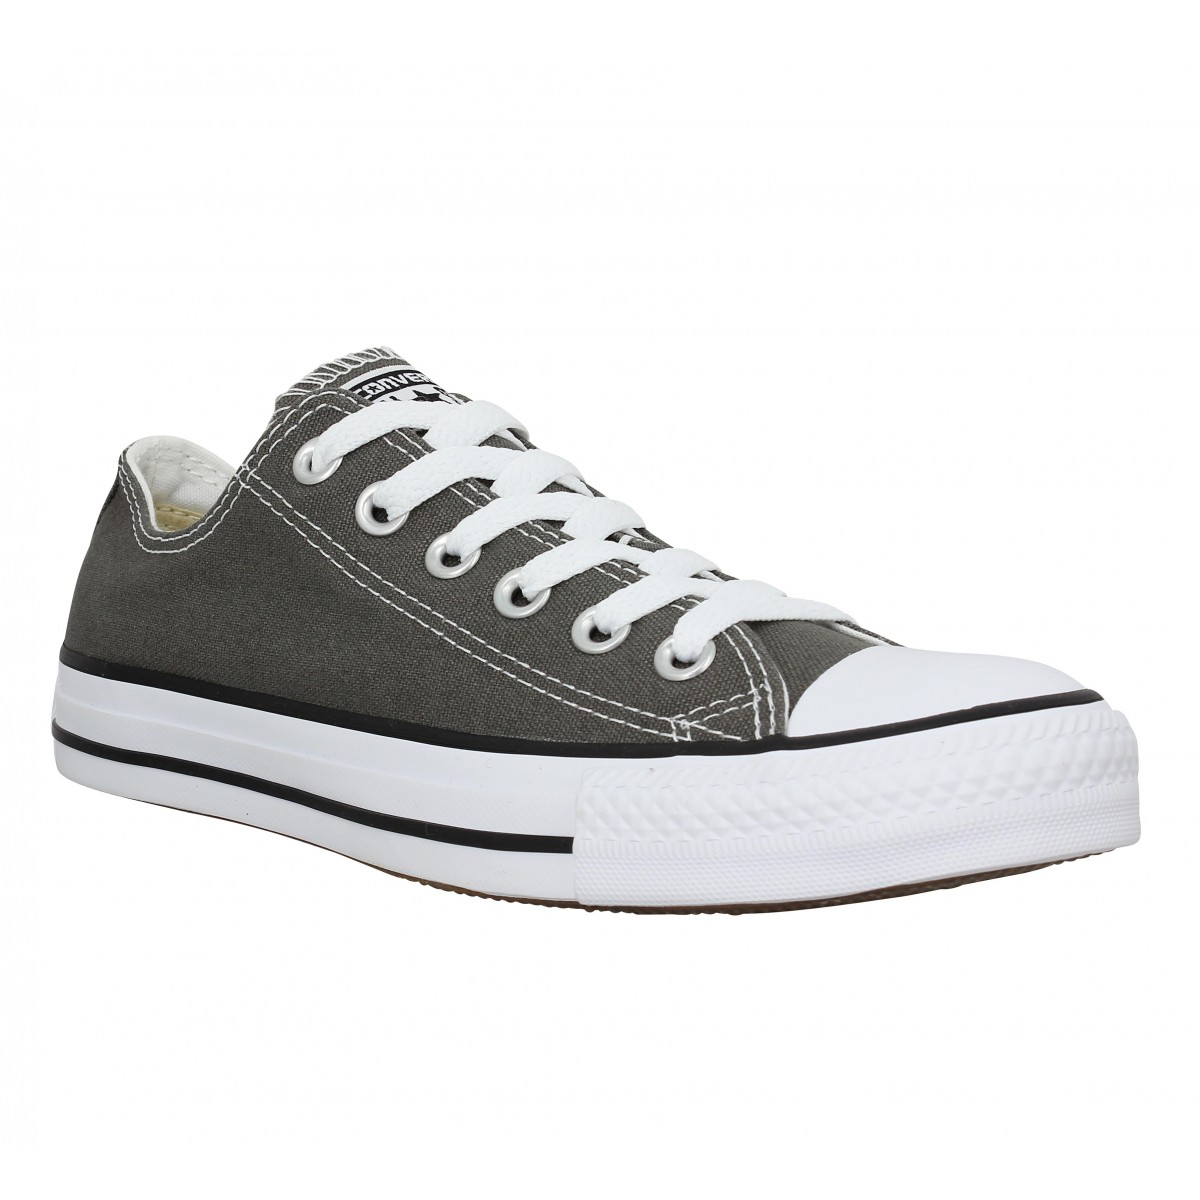 Baskets CONVERSE Chuck Taylor All Star toile Homme Anthracite